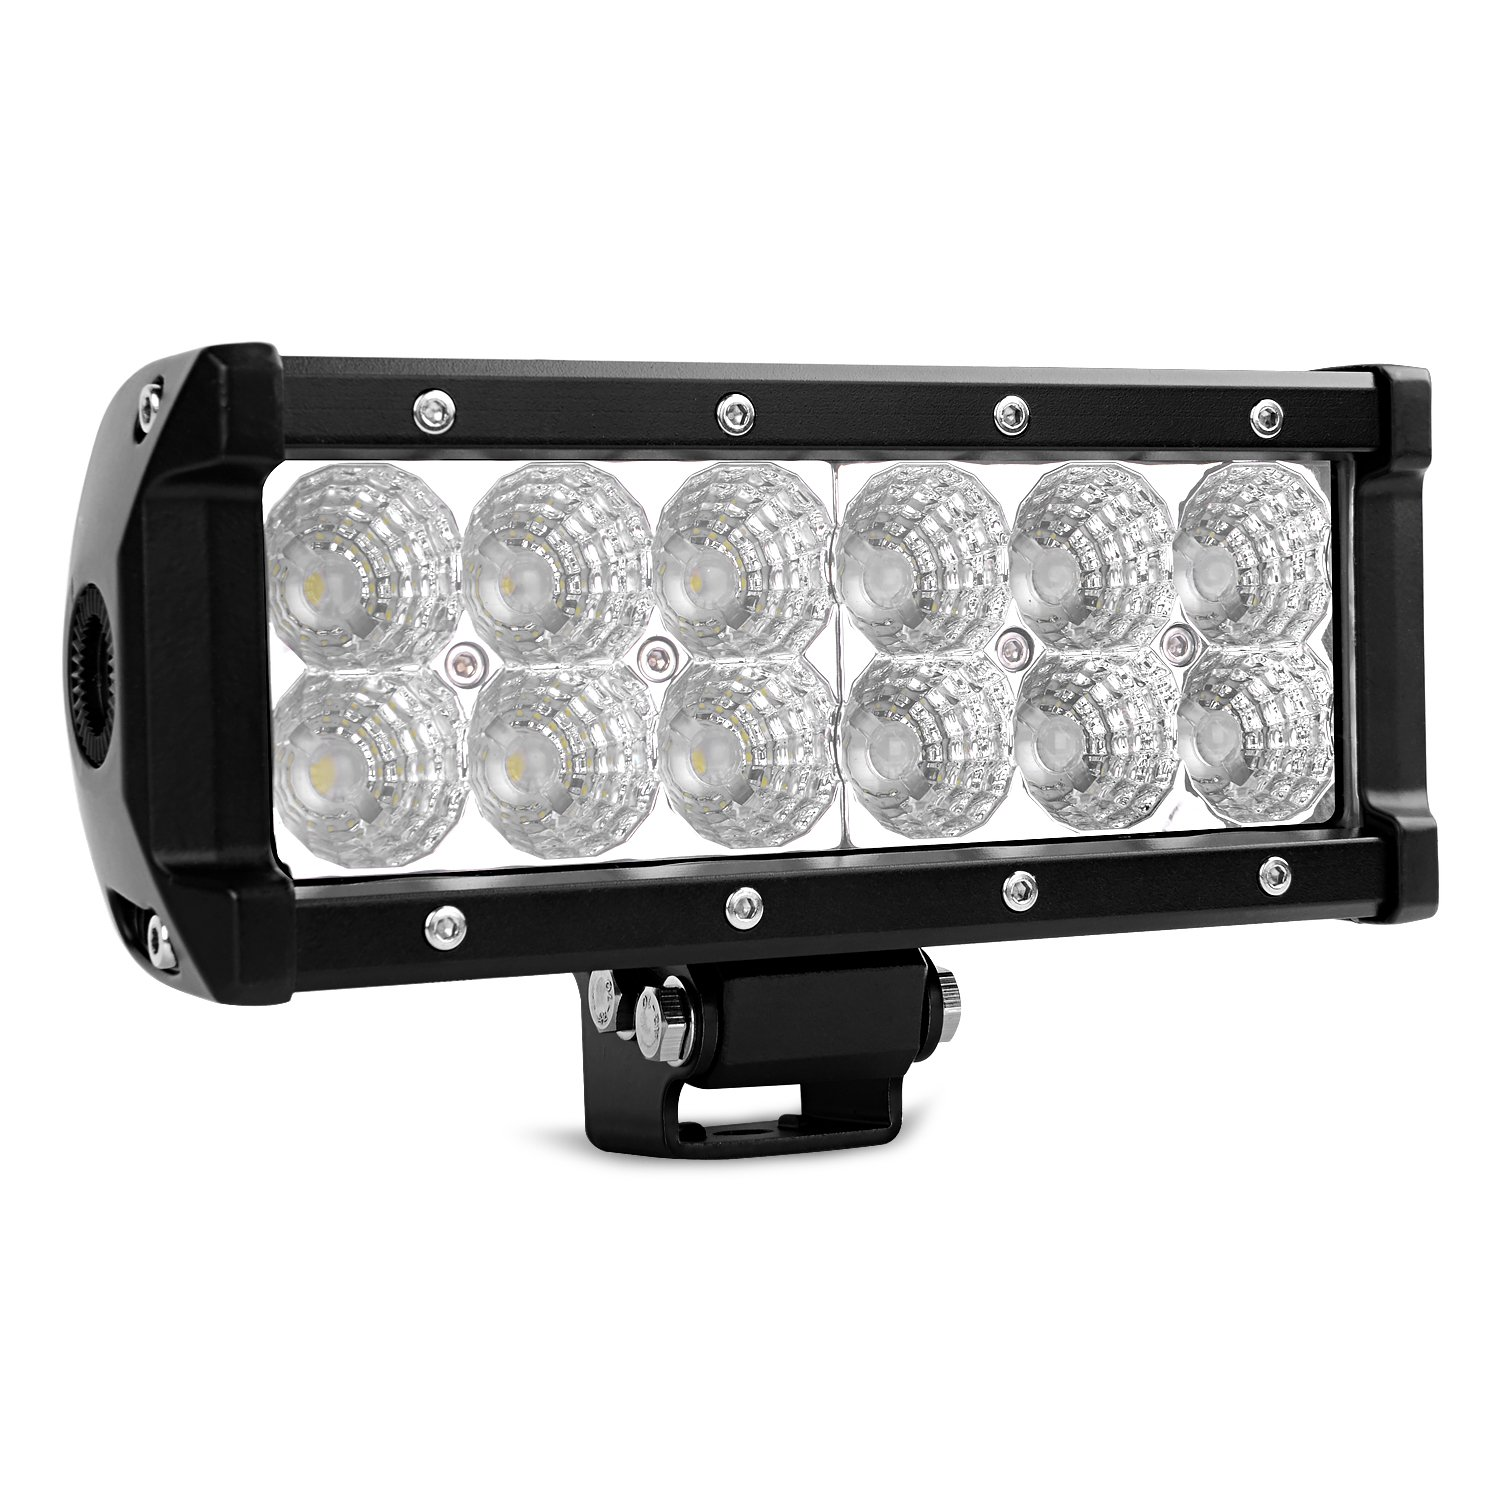 LED/ Light Bar/ Nilight/ 52Inch 300W/  Spot Flood Combo LED Driving Lamp Off Road Lights LED Work Light/ for Trucks/ Boat Jeep Lamp,2 Years Warranty